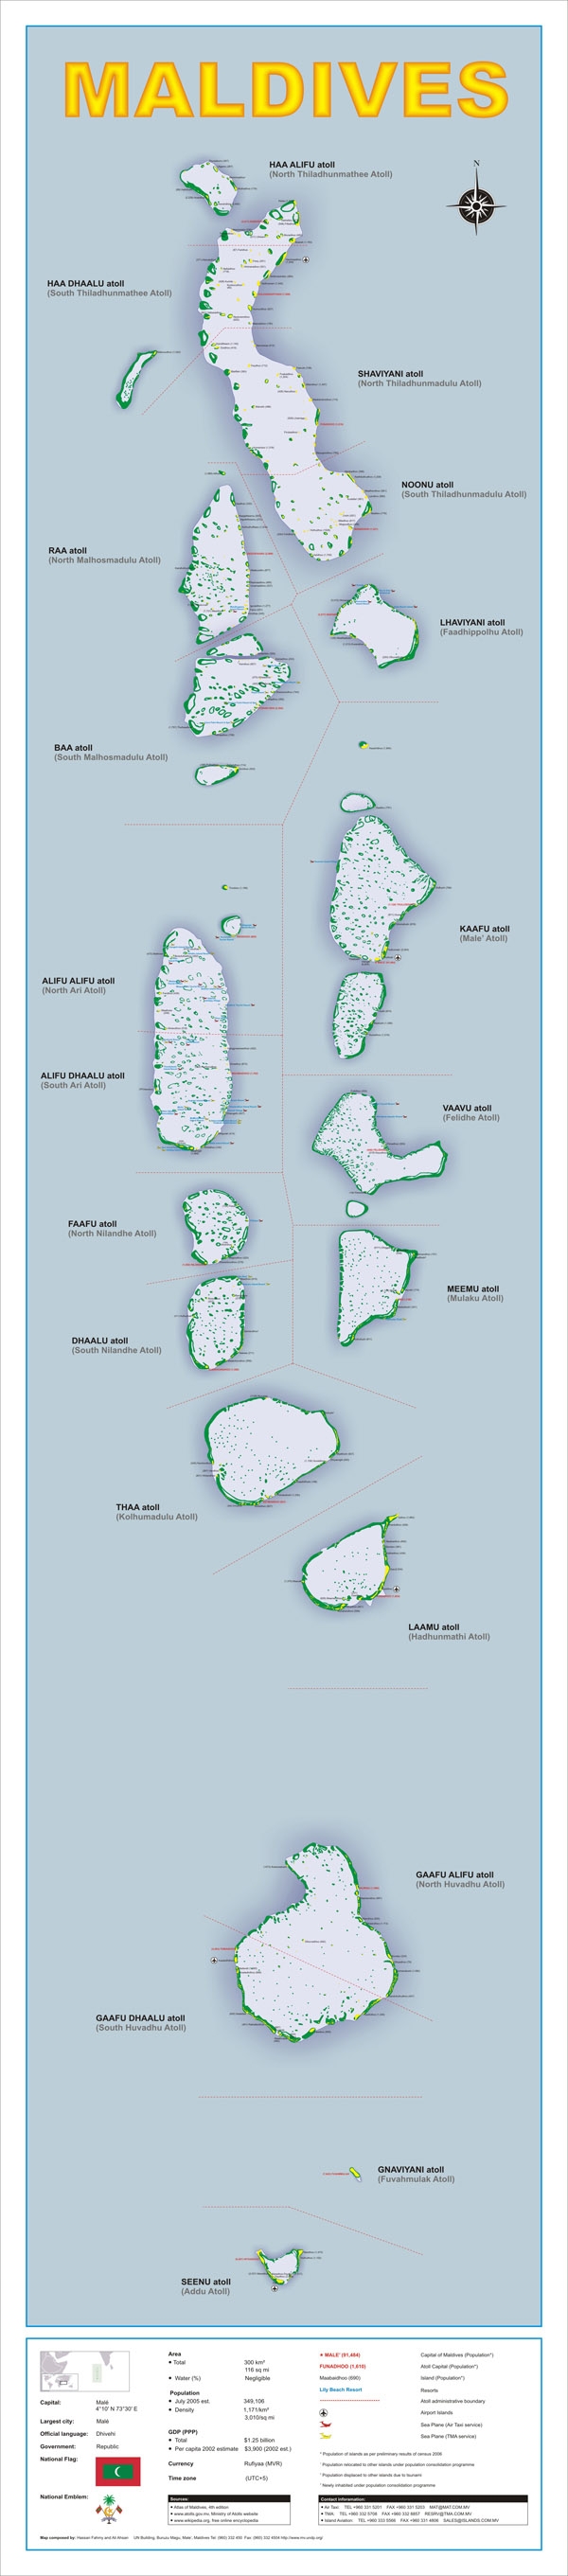 Large detailed administrative map of Maldives.